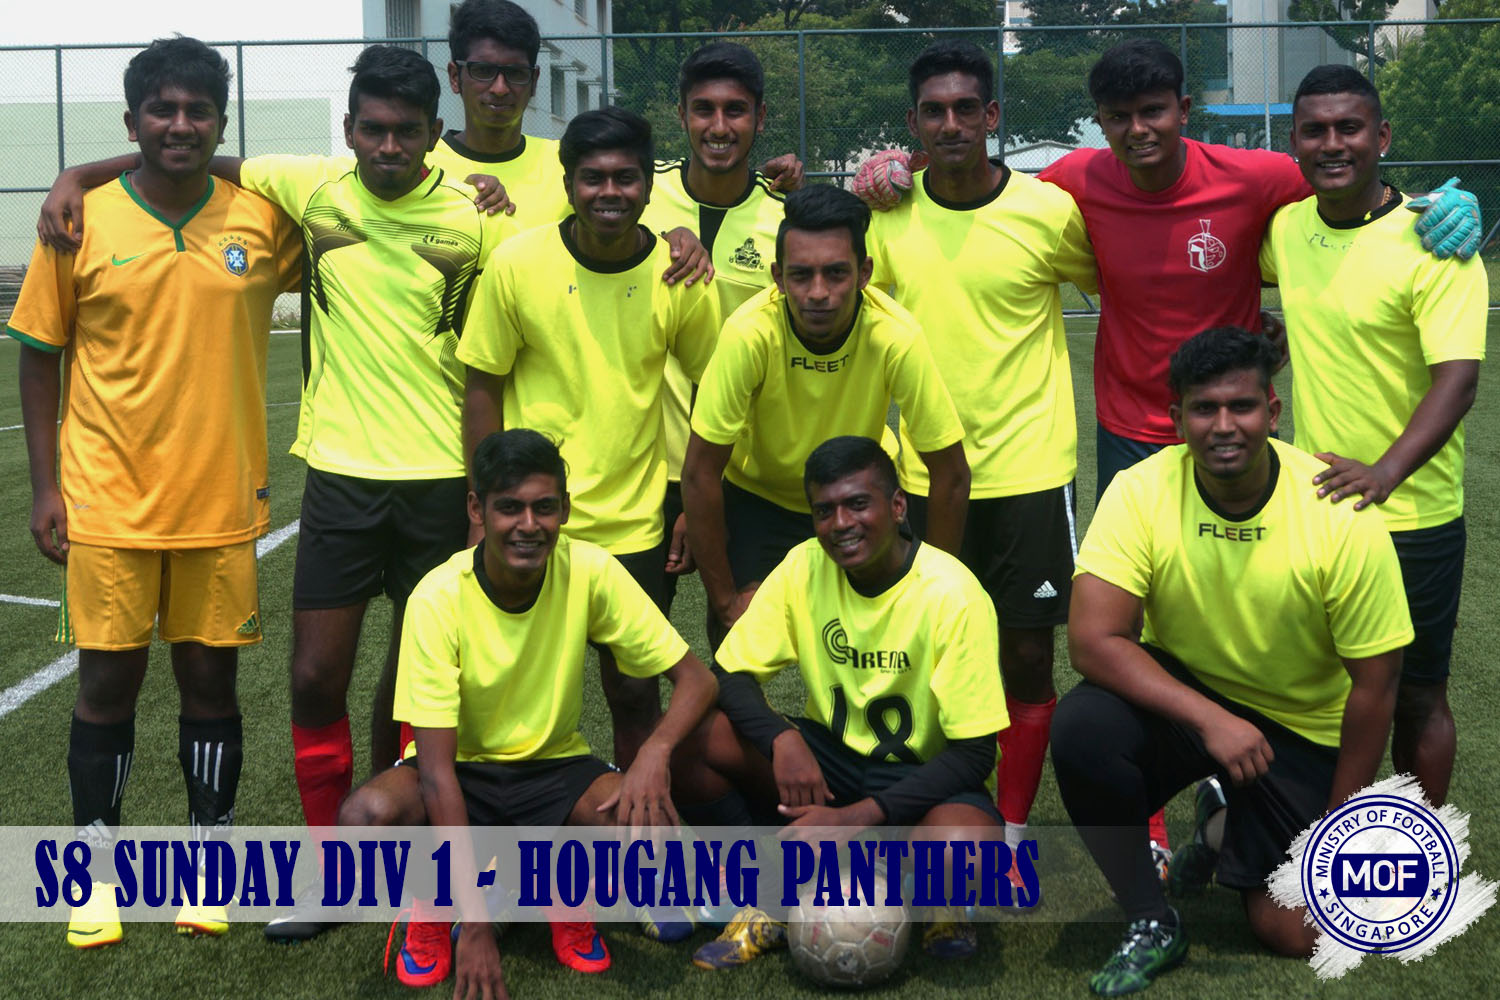 Hougang Panthers